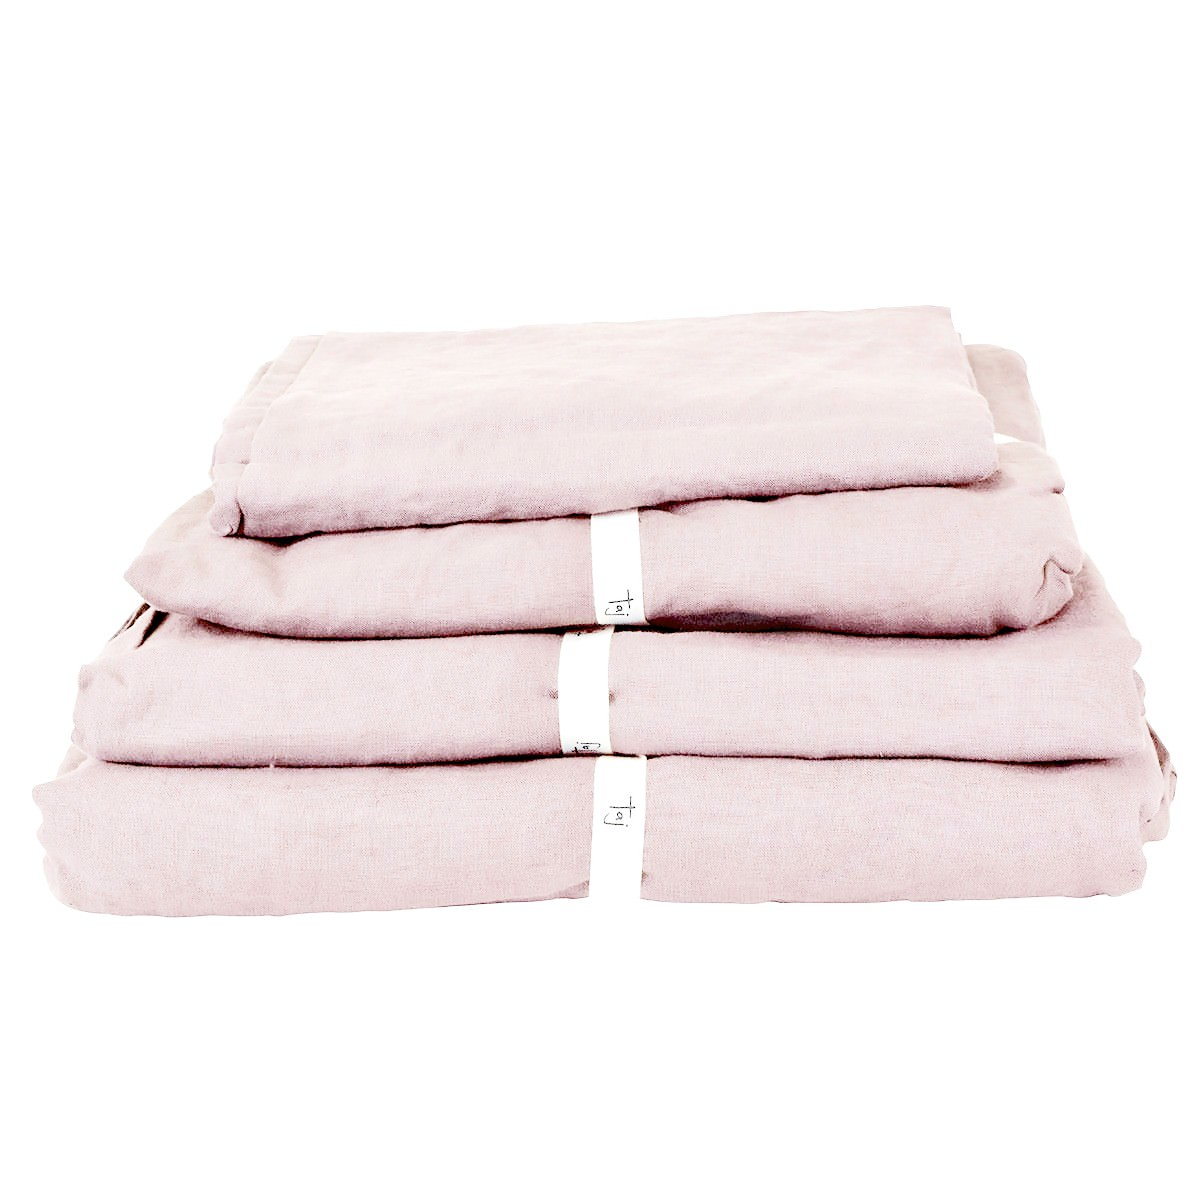 Taj French Linen Fitted Sheet, Queen, Blush